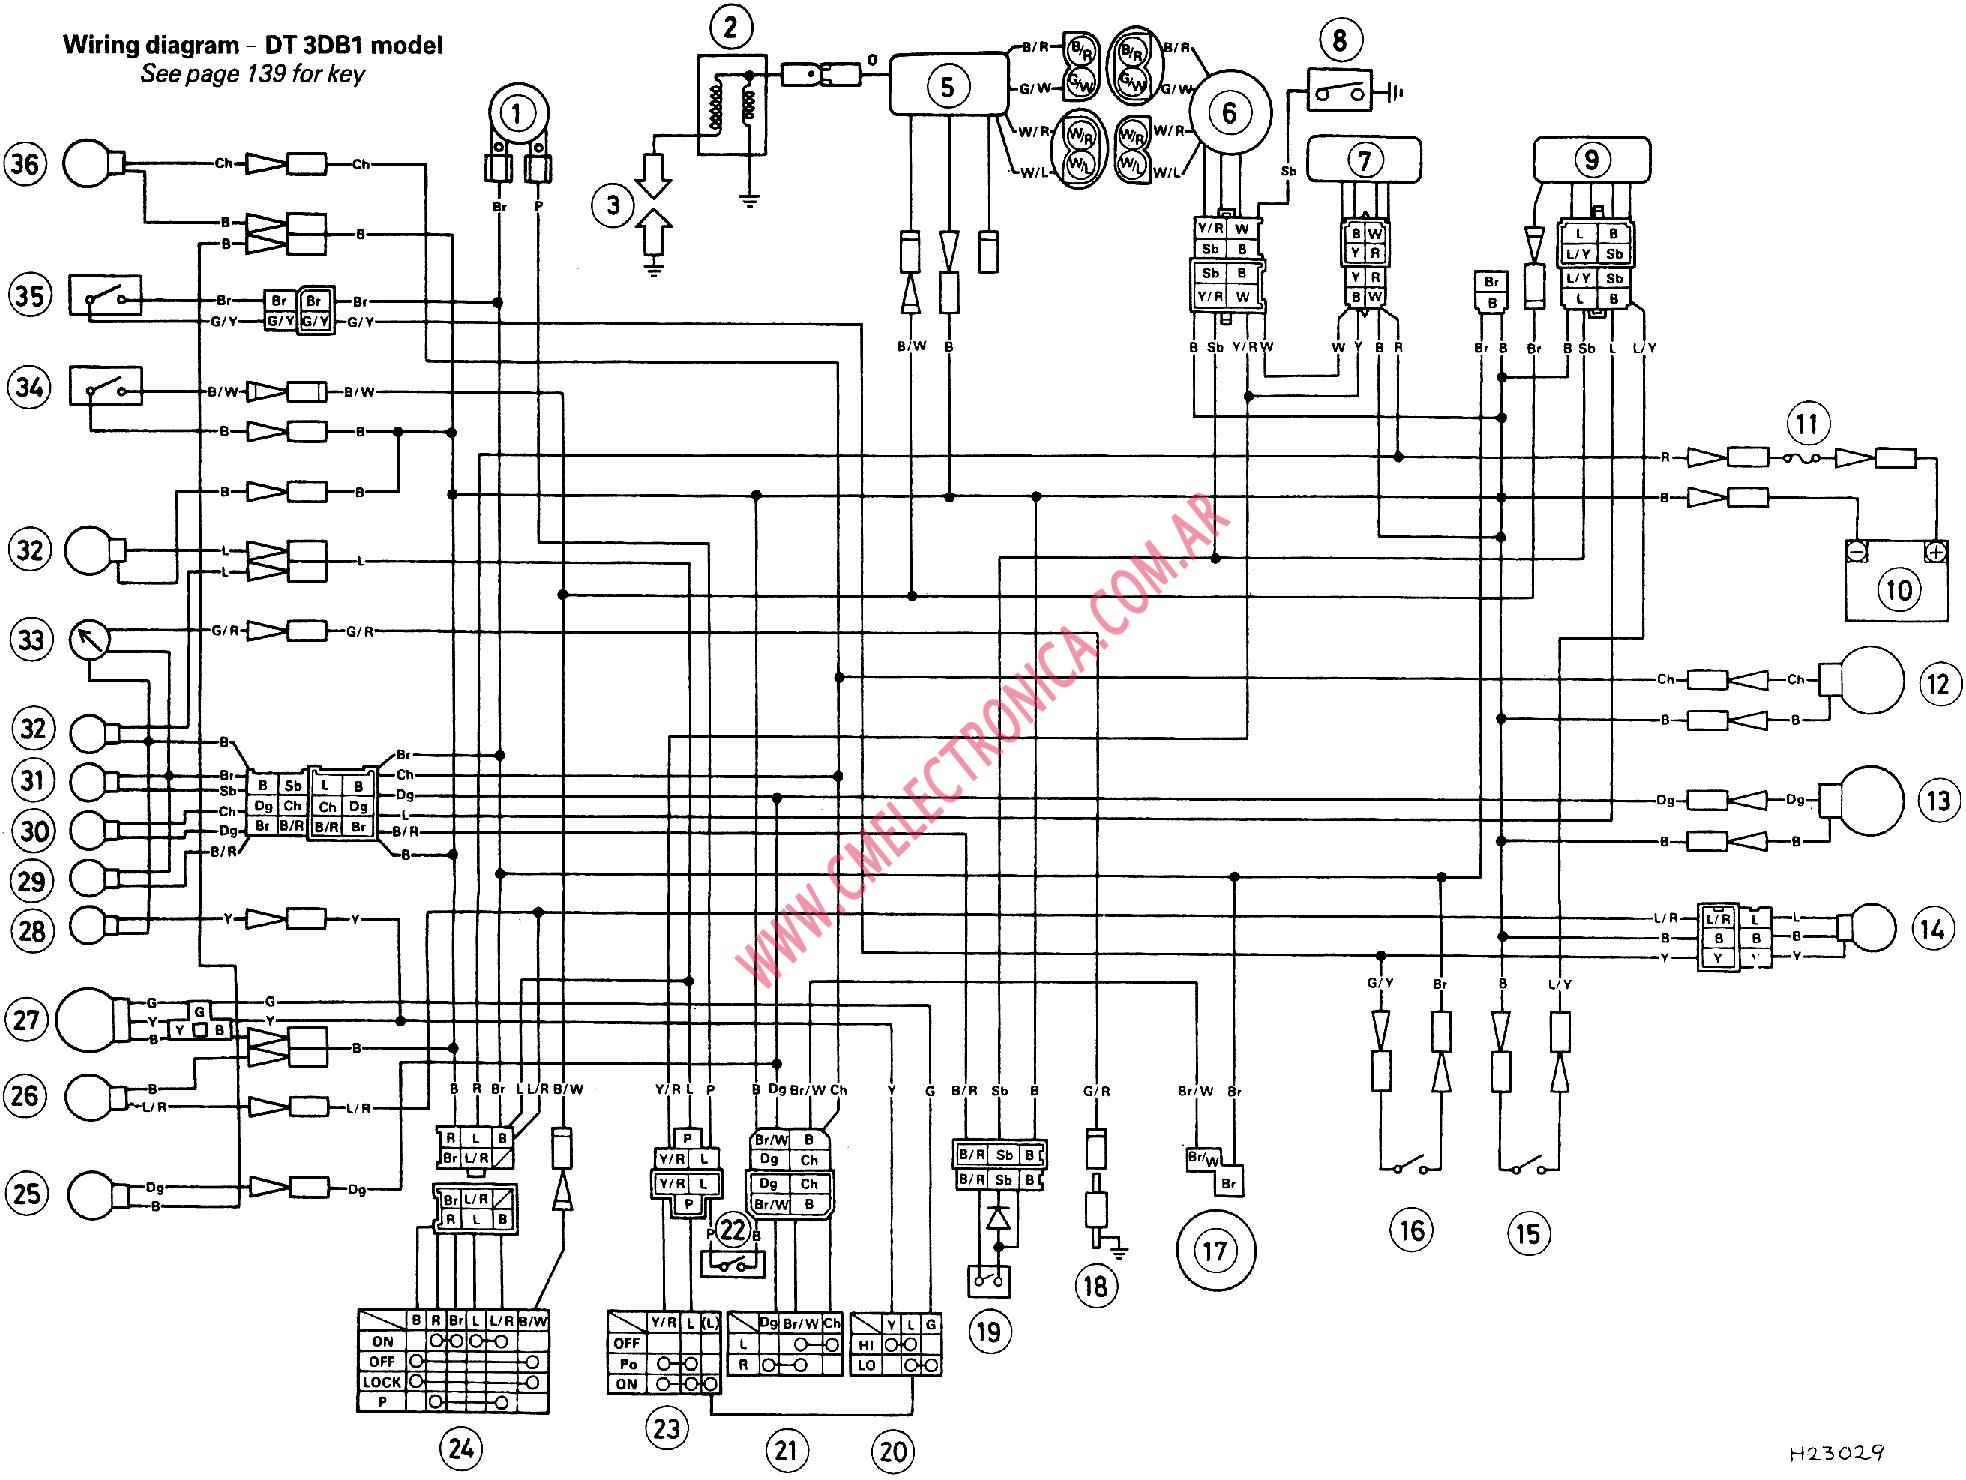 yamaha zeal wiring diagram yamaha xs wiring diagram - auto electrical wiring diagram free yamaha atv wiring diagram